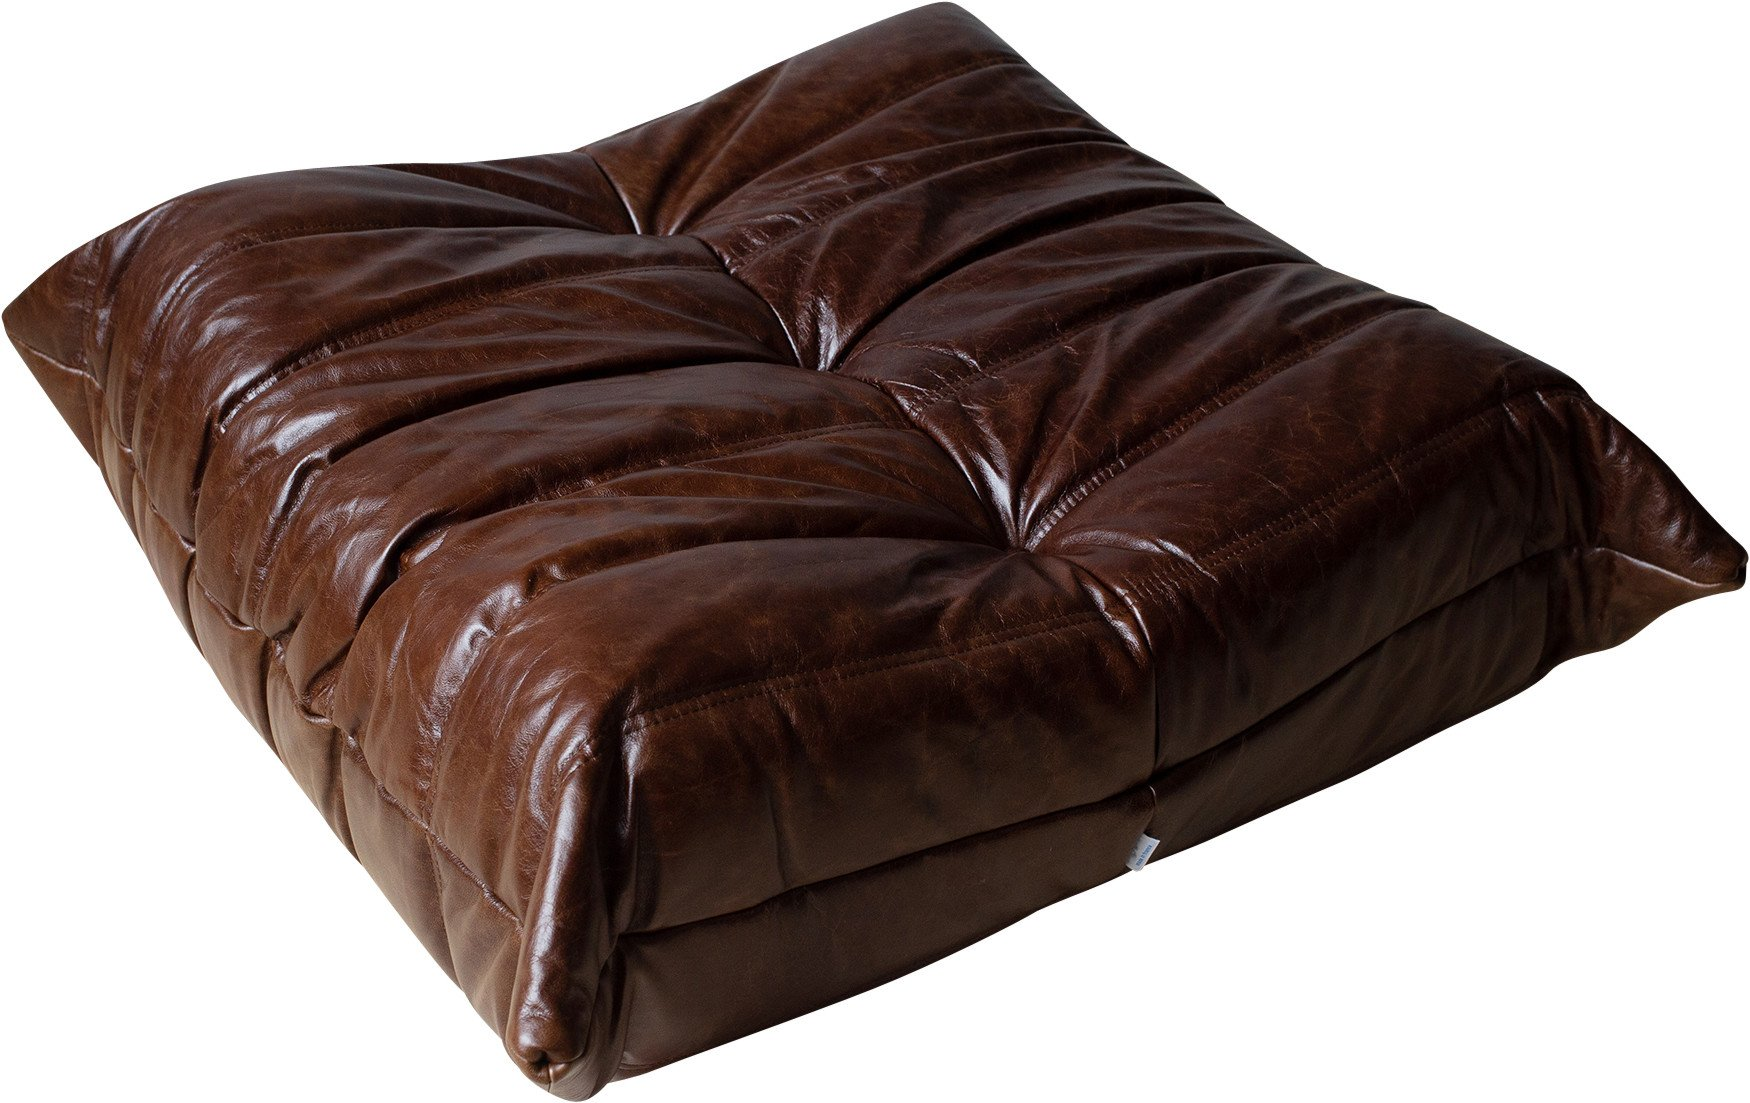 Togo Pouf in Dubai Brown Leather by M. Ducaroy, Ligne Roset, 1970s